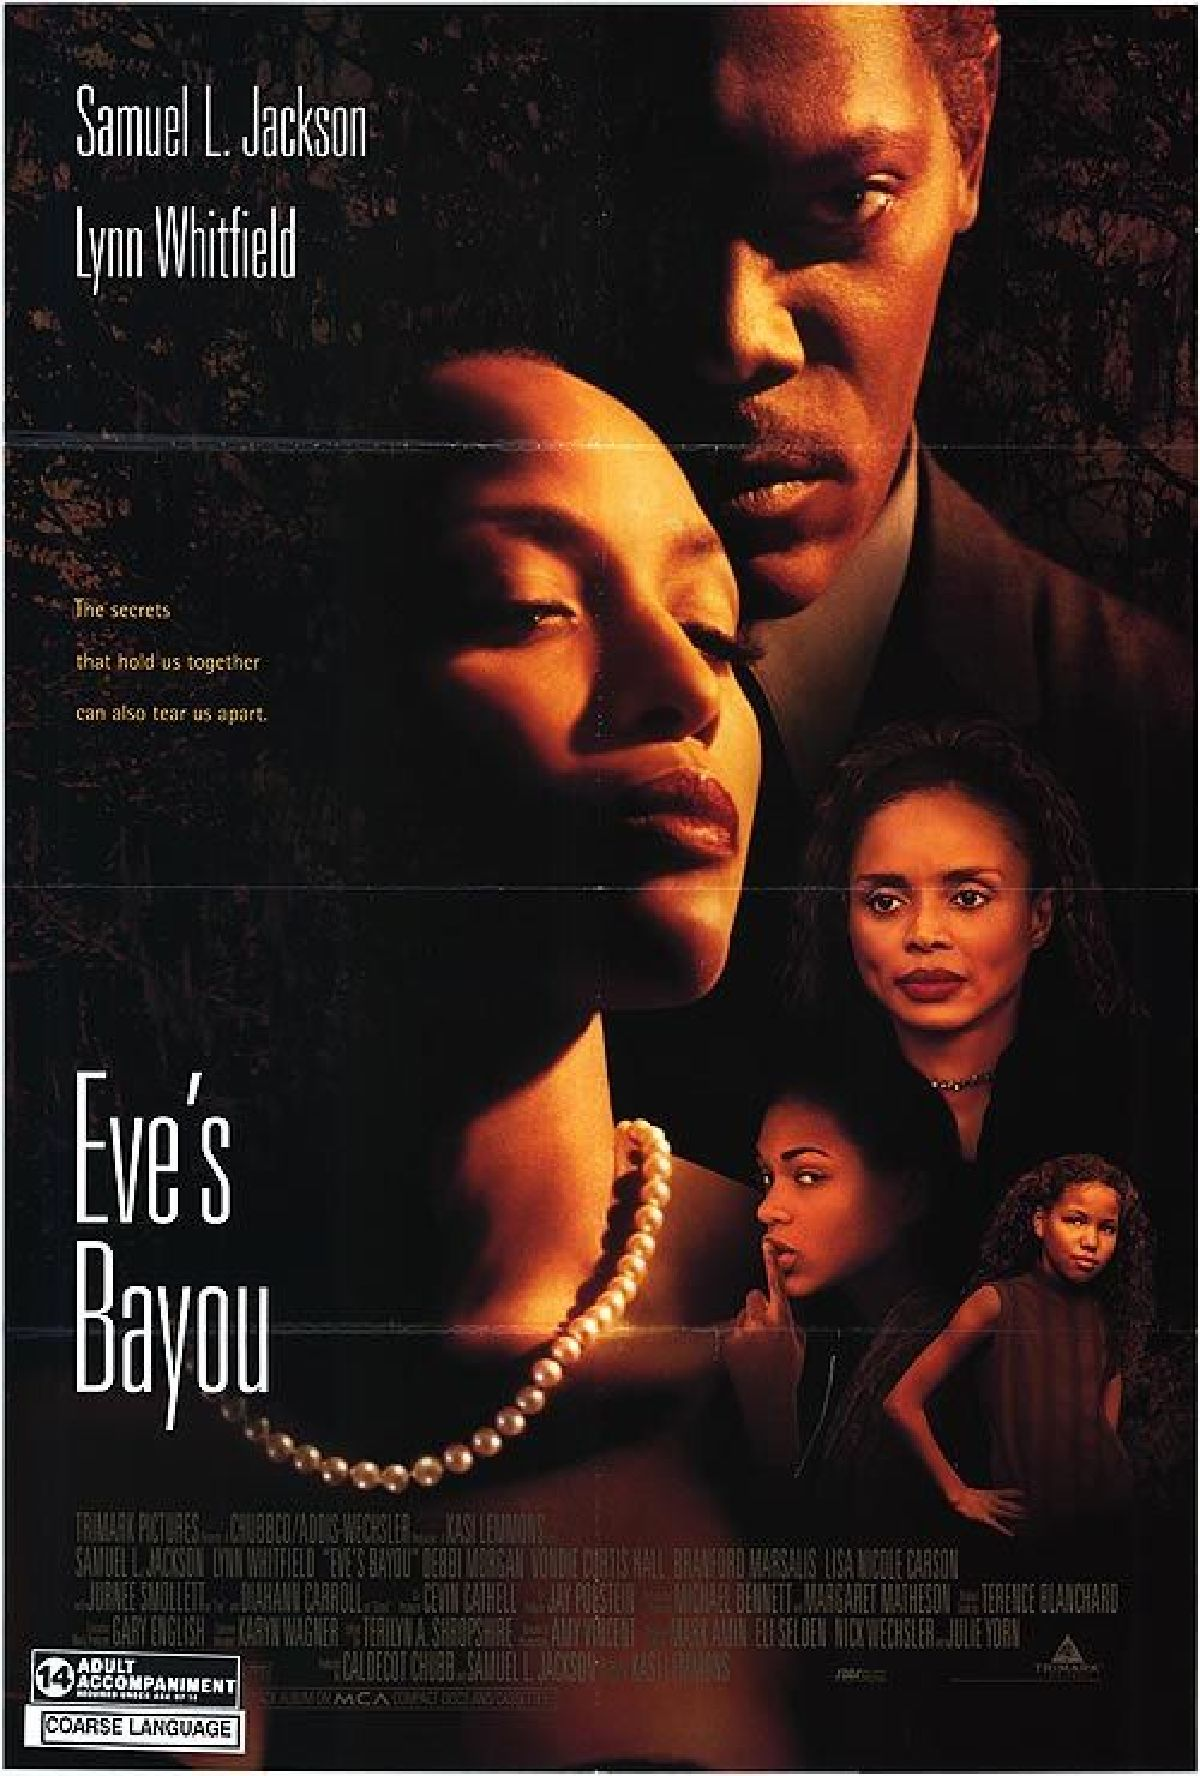 'Eve's Bayou' movie poster